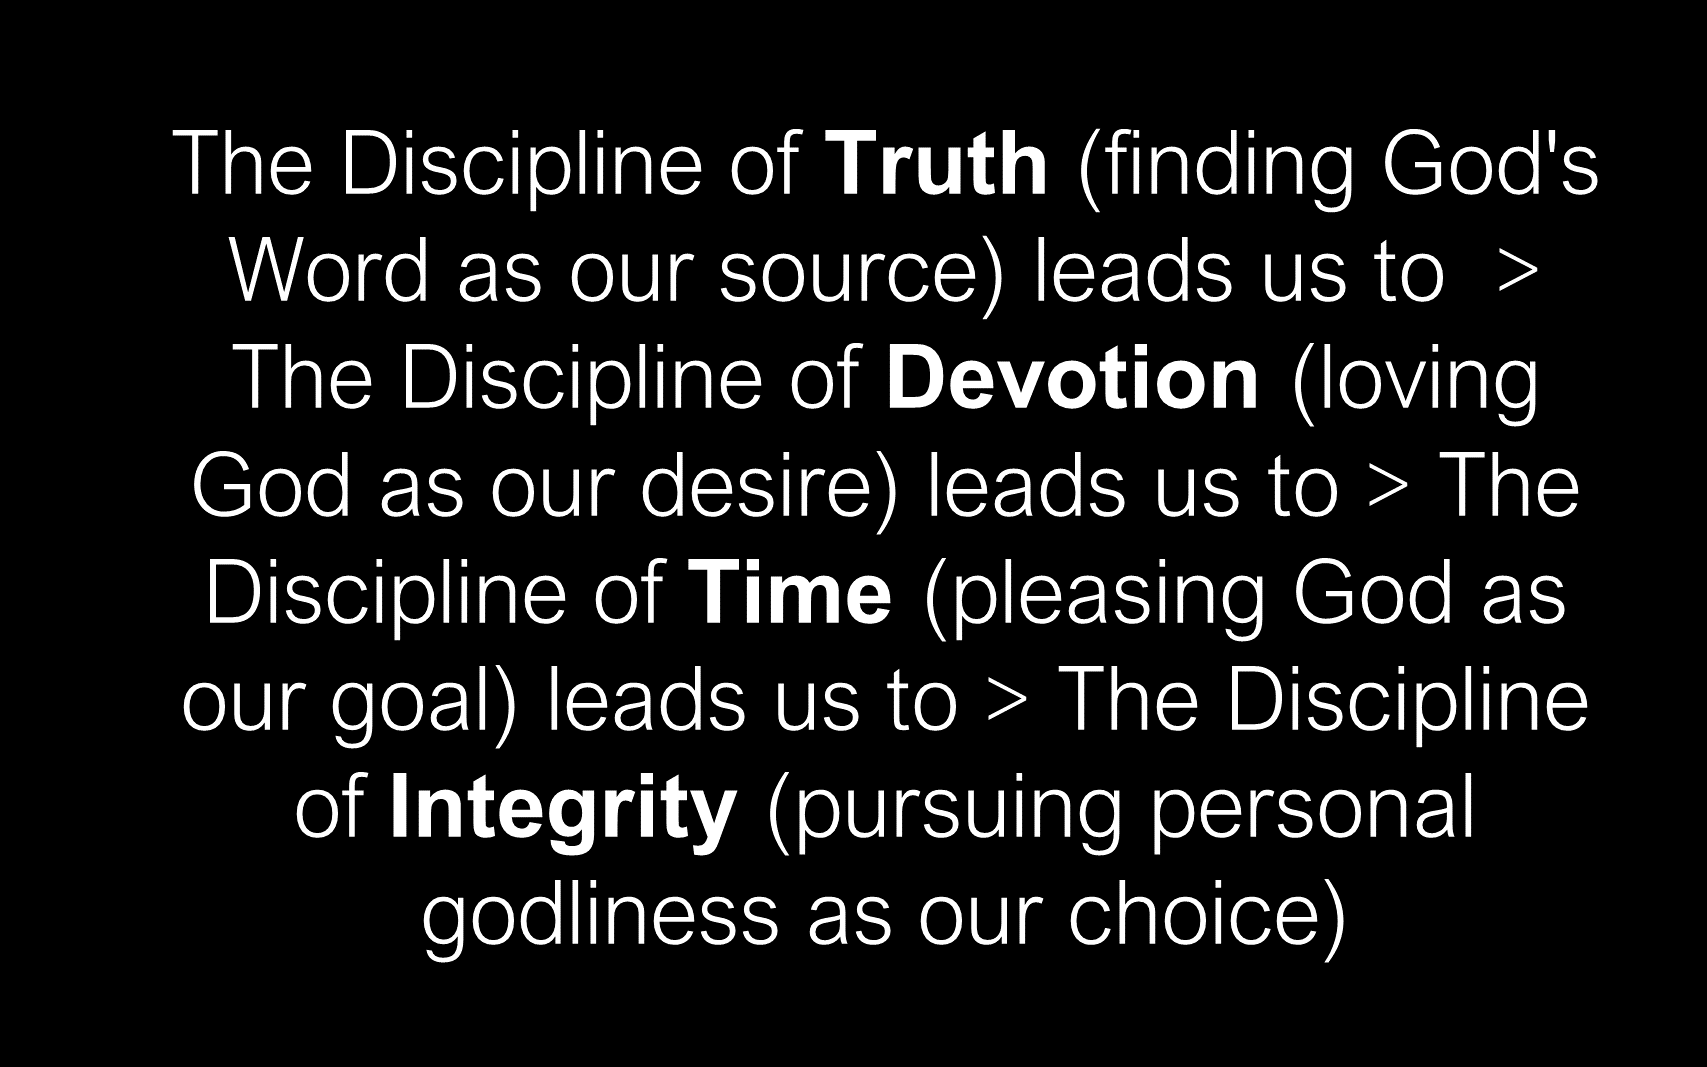 ESH-08 - The Discipline Of Integrity - Pursuing Personal Godliness (10)